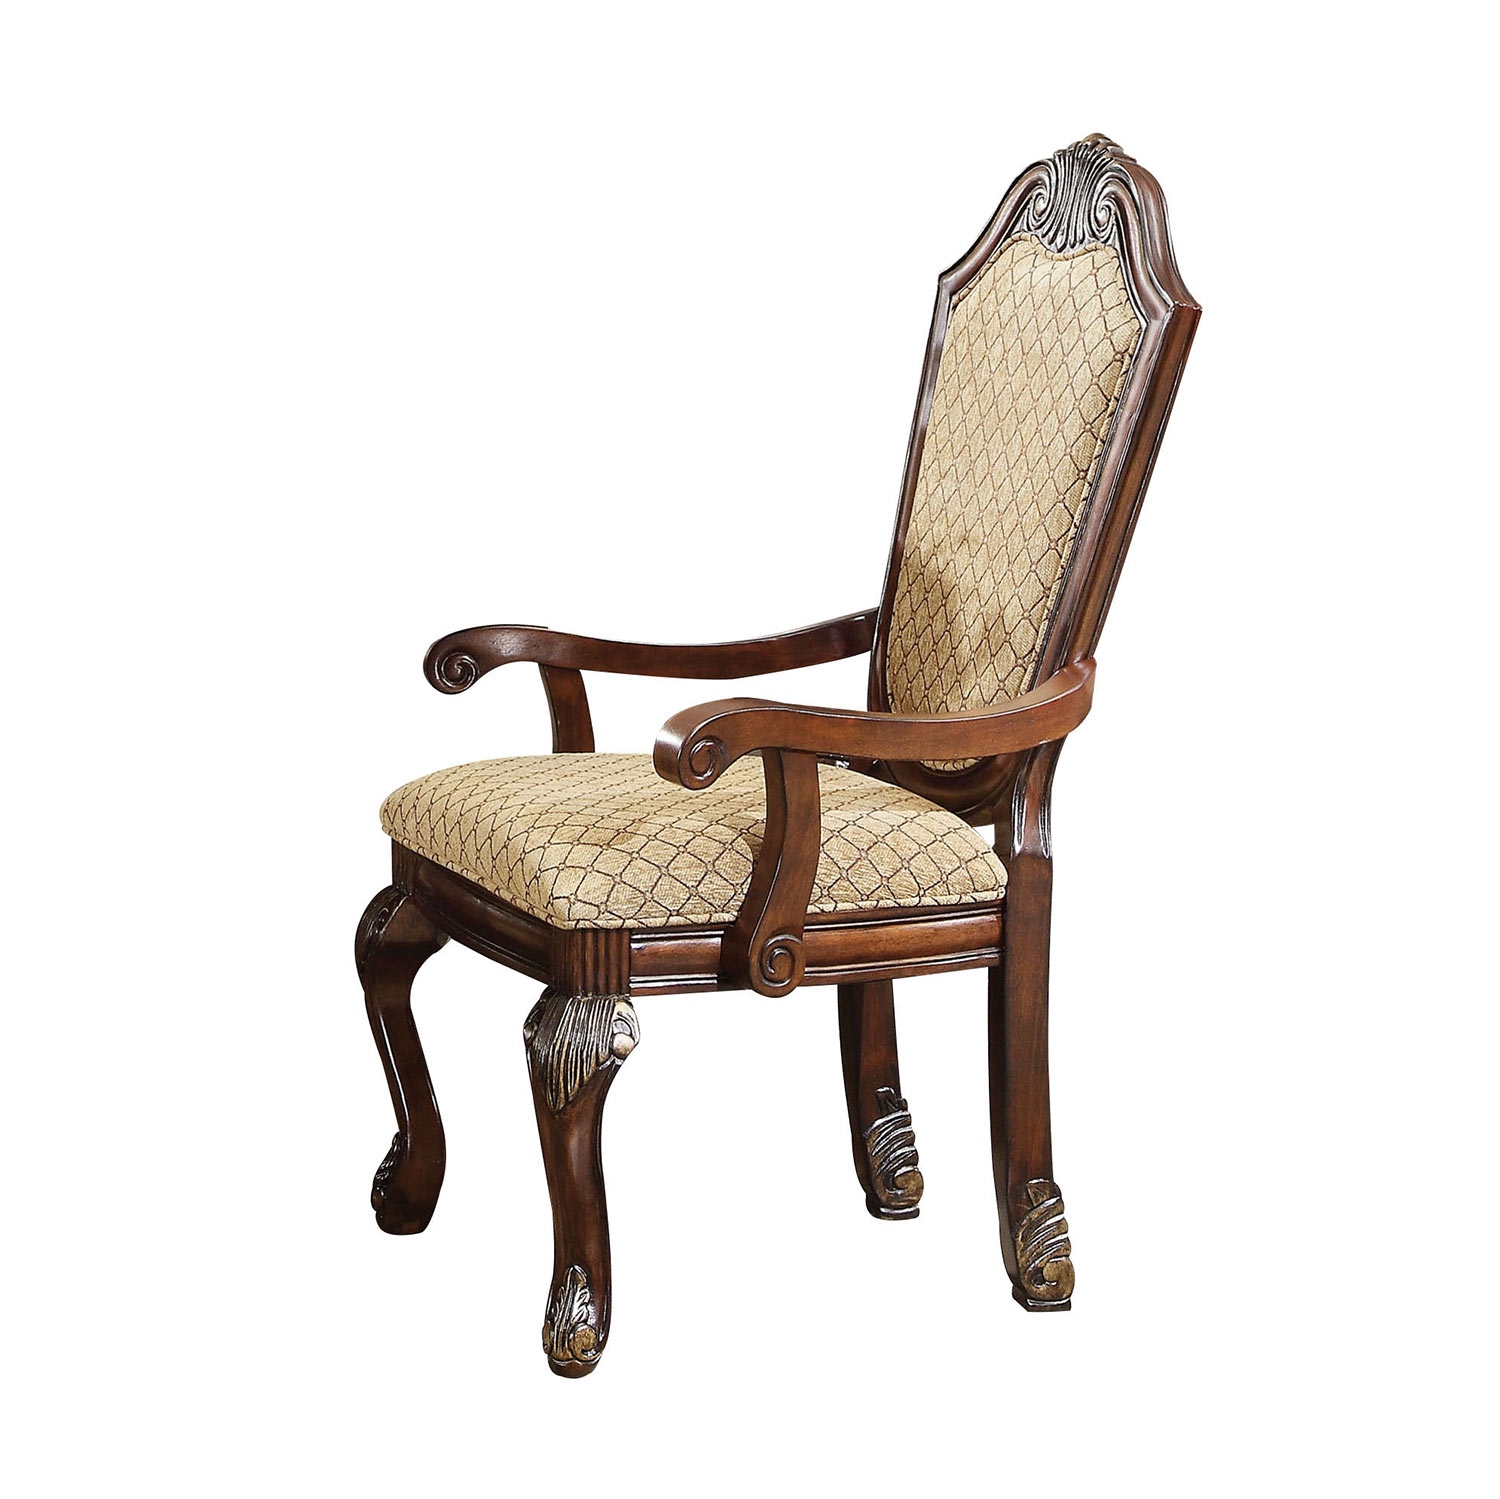 Acme Chateau De Ville Arm Chair - Fabric/Espresso